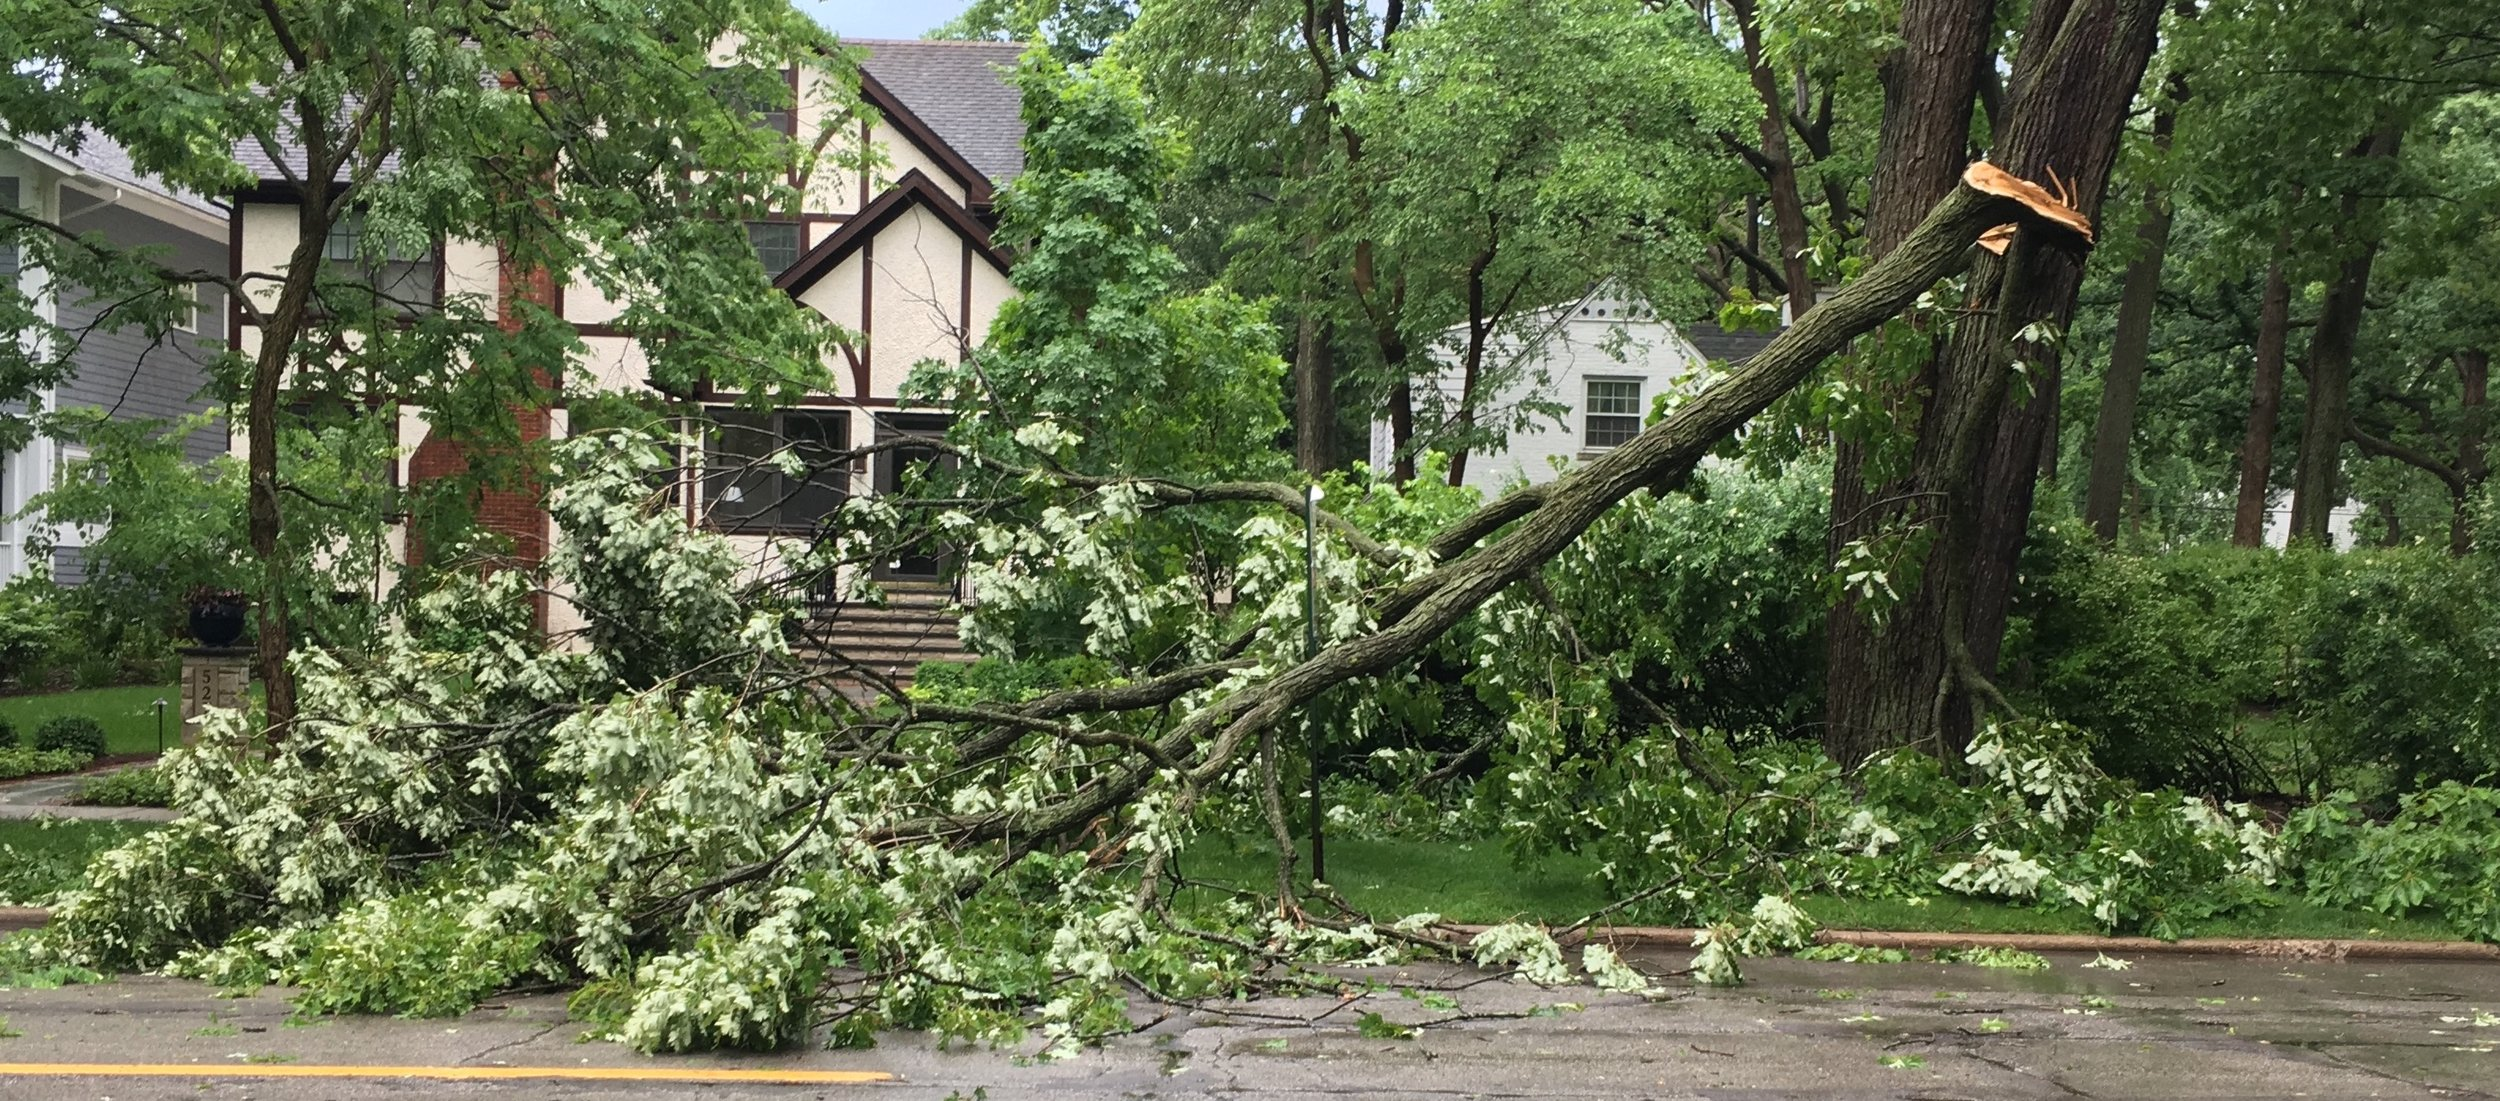 Tree damage due to a microburst over Chicago